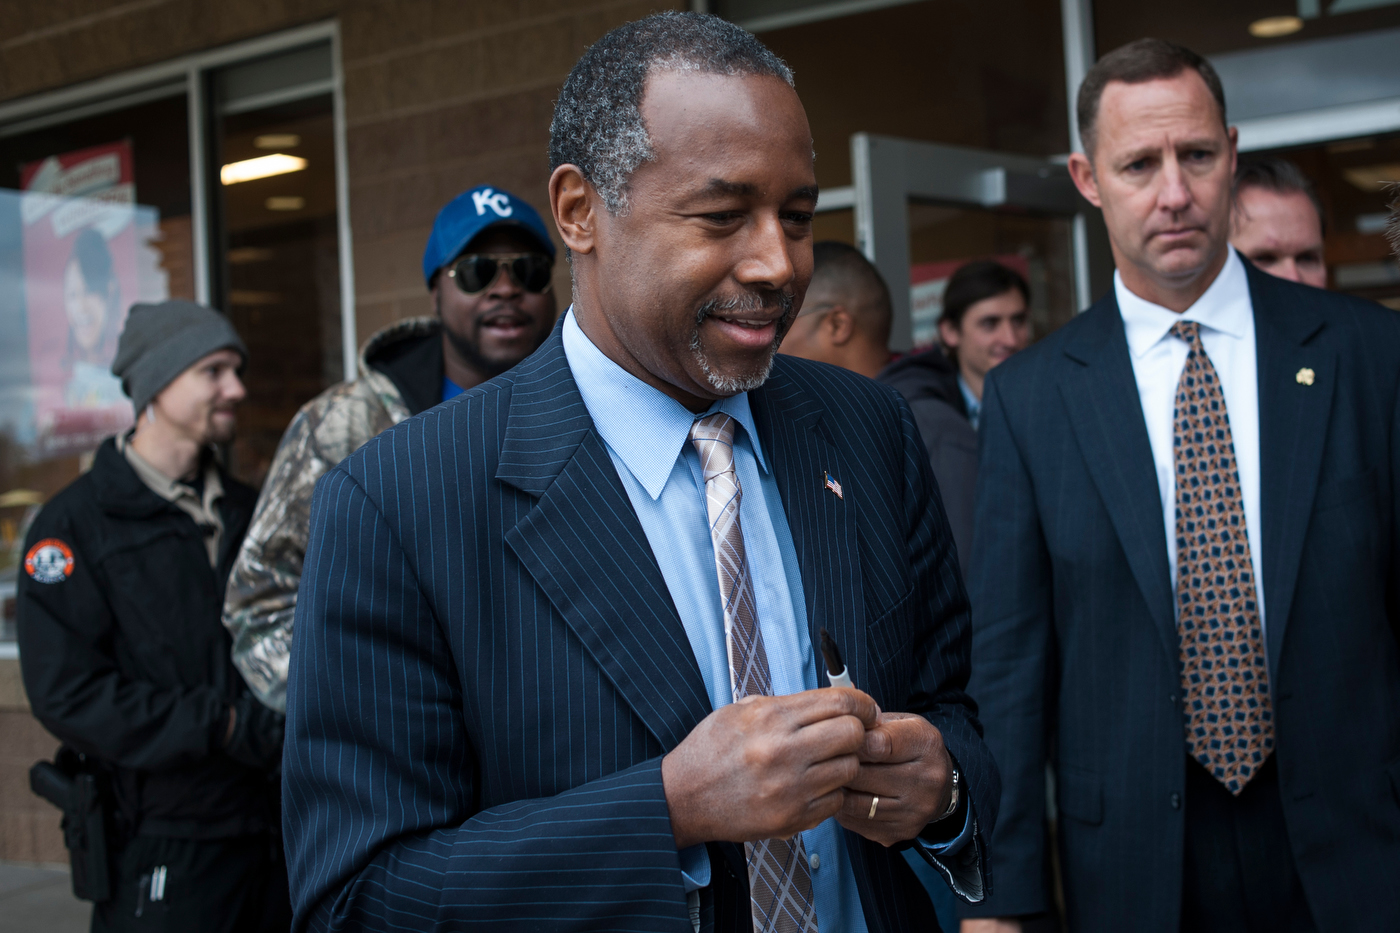 Republican presidential candidate Dr. Ben Carson leaves a book signing and campaign event in Ames, Iowa.